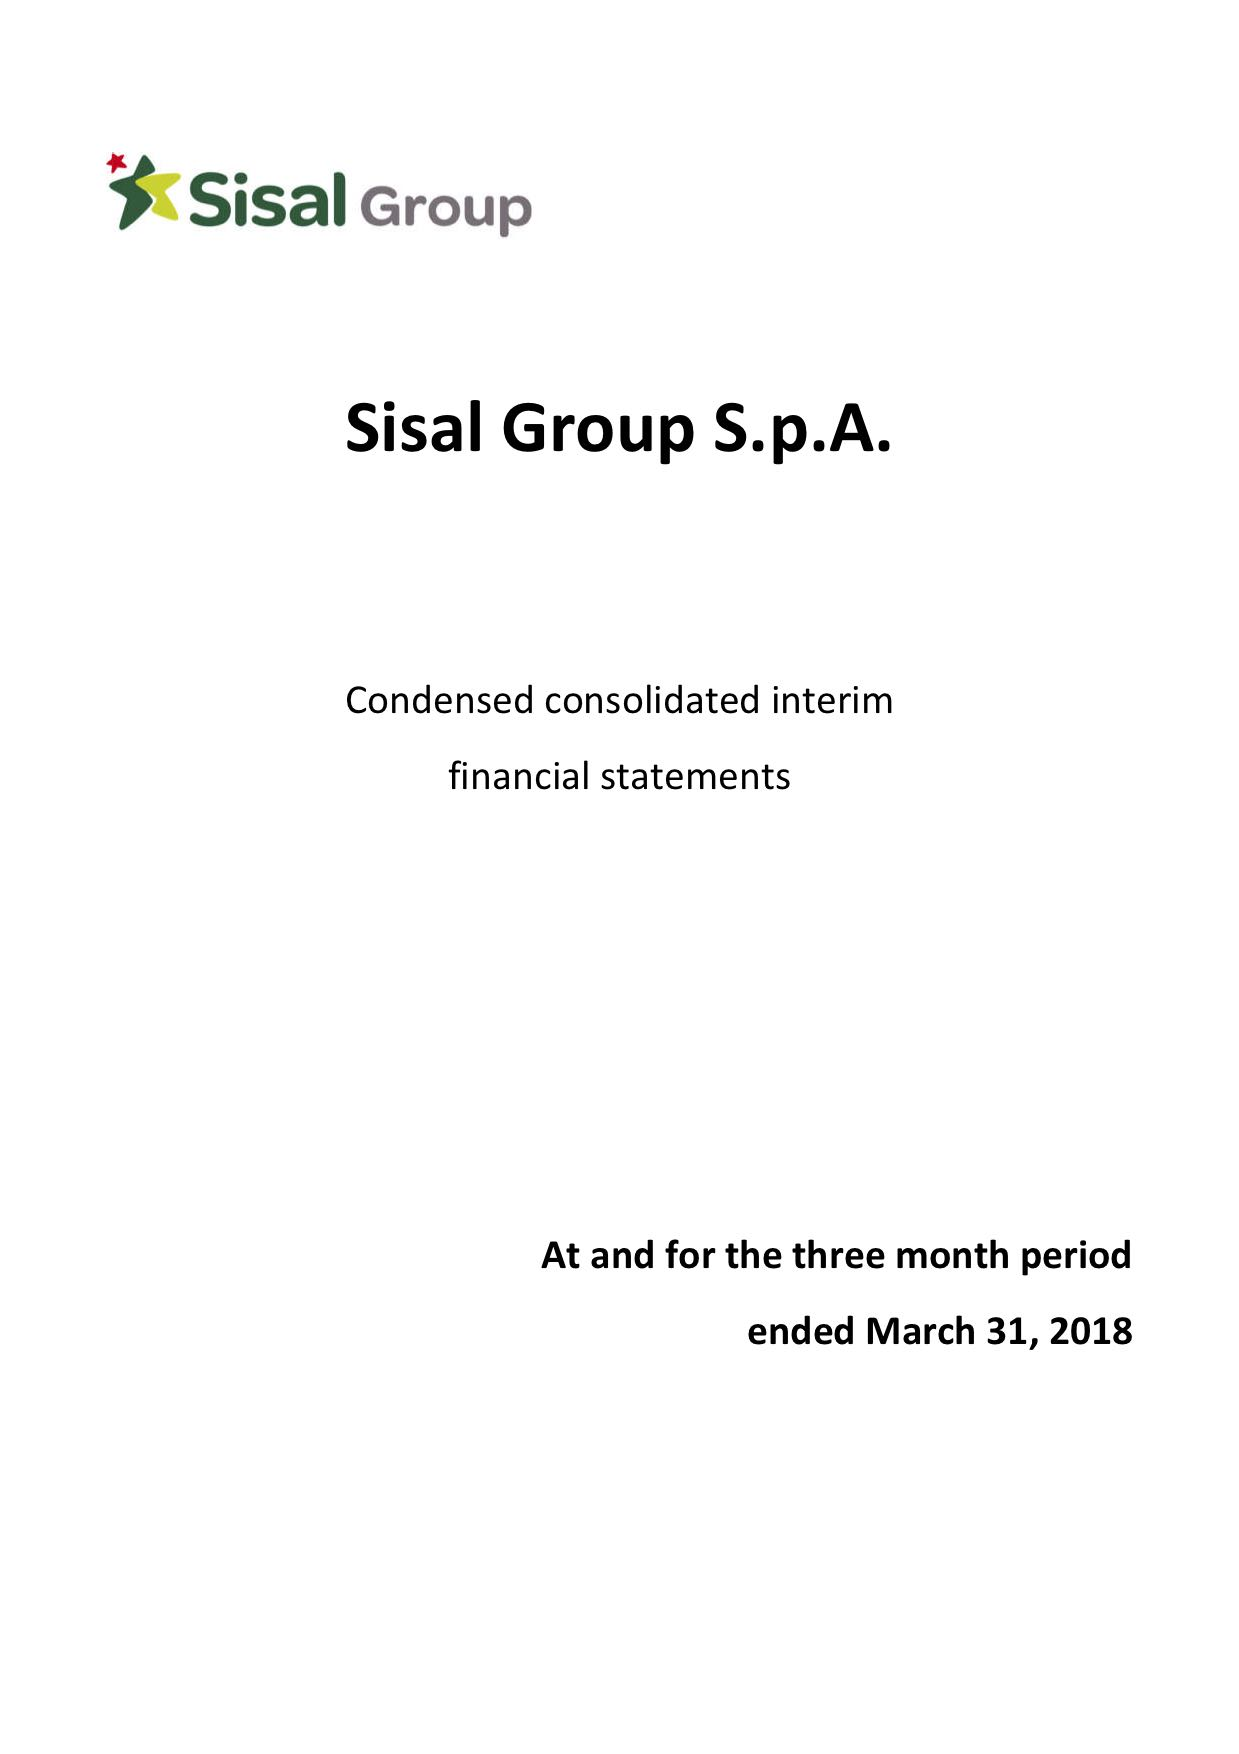 Sisal Group Consolidated Financial Statement 2019